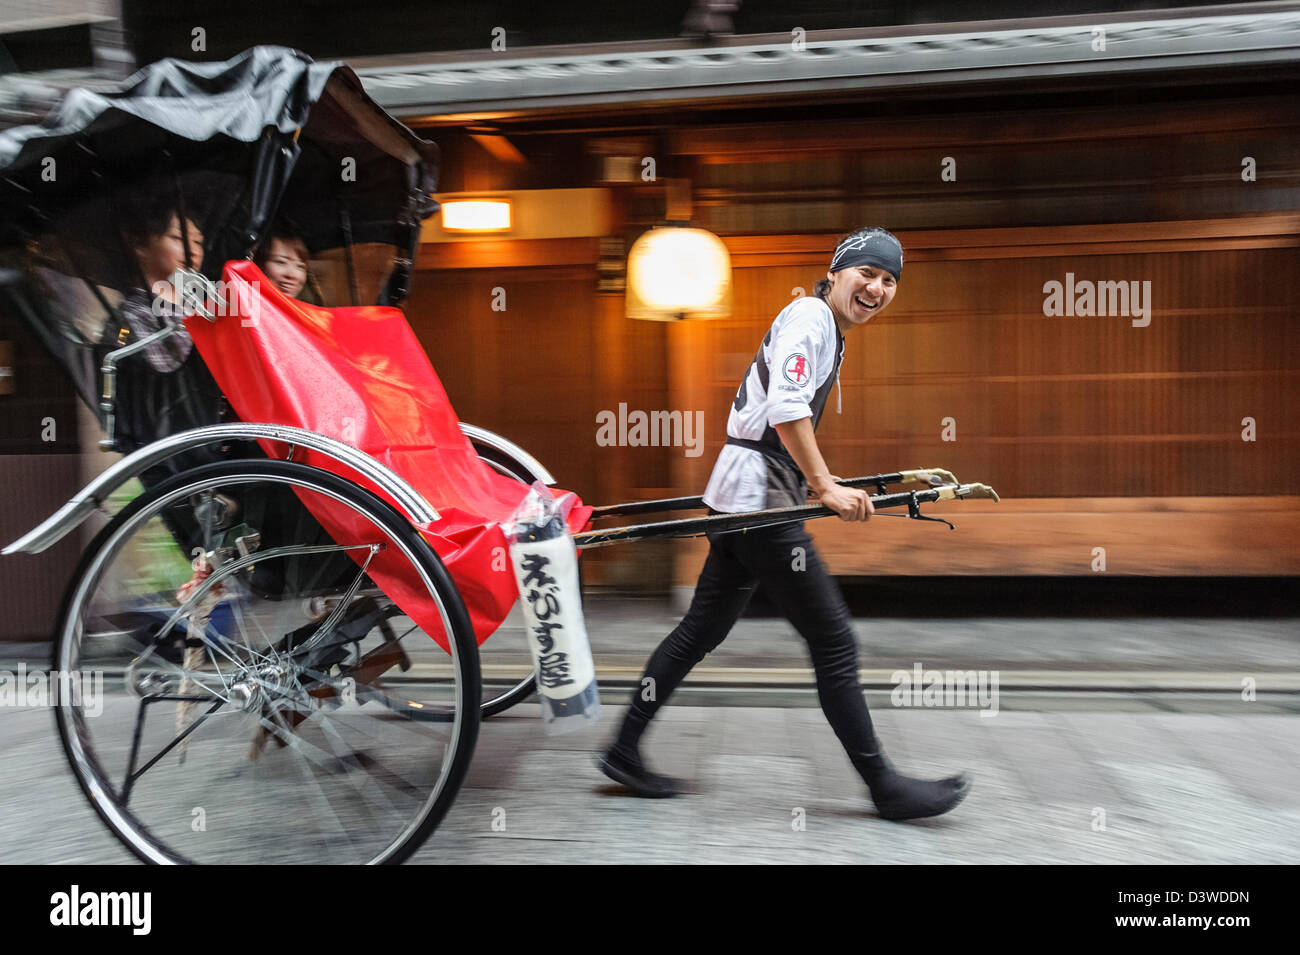 Man pulling a rickshaw in front of a temple, Kyoto, Japan, Asia - Stock Image